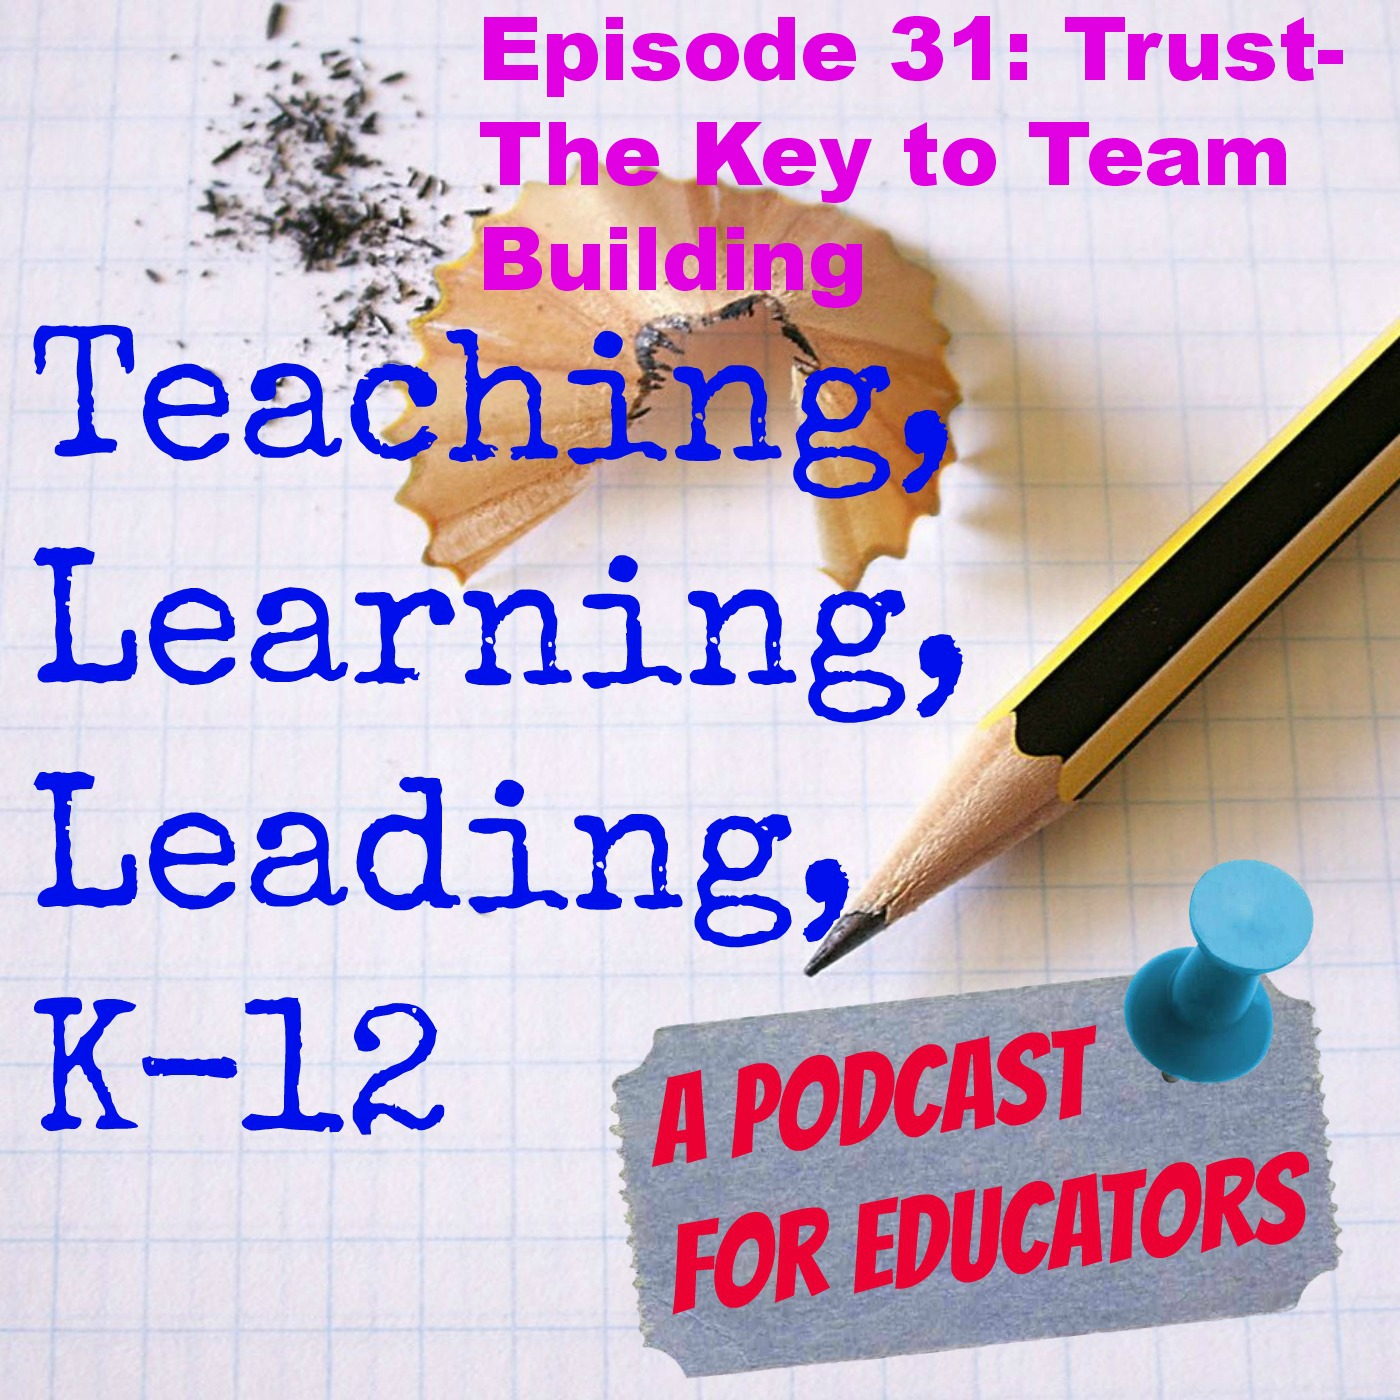 Episode 31: Trust- The Key to Team Building